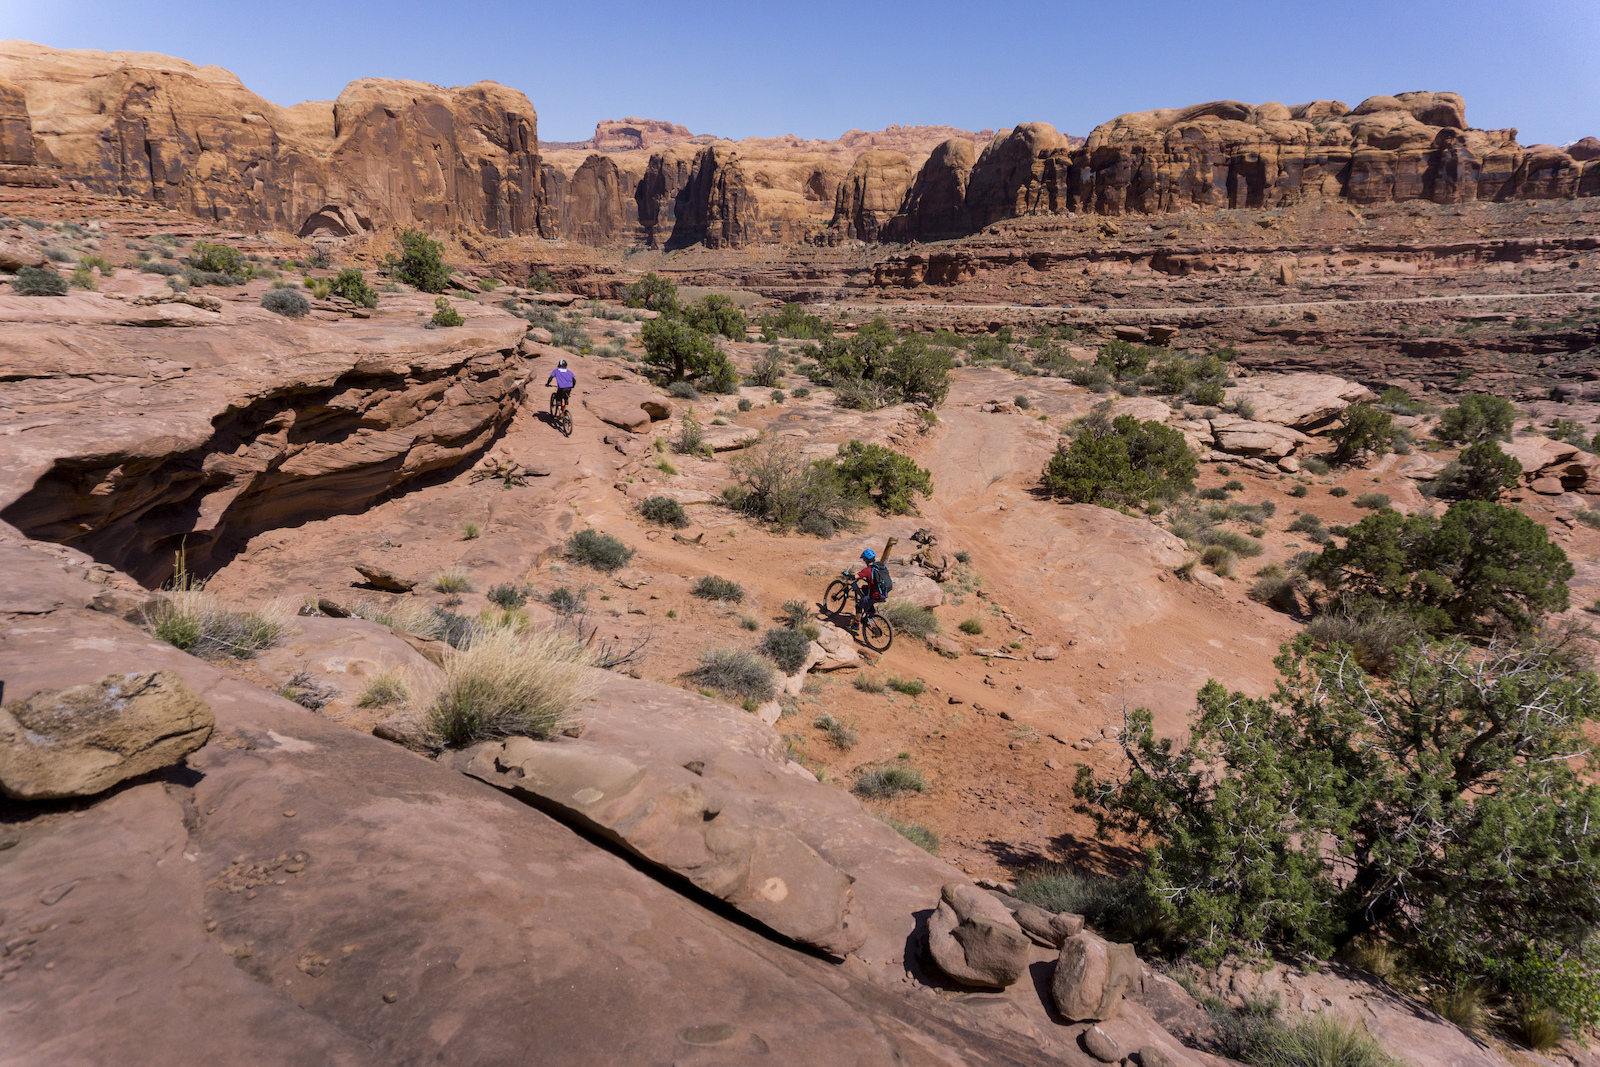 ede8f5fd1713 If you re a fan of E-bikes it looks like you might be out of luck on some  of Moab s singletrack.